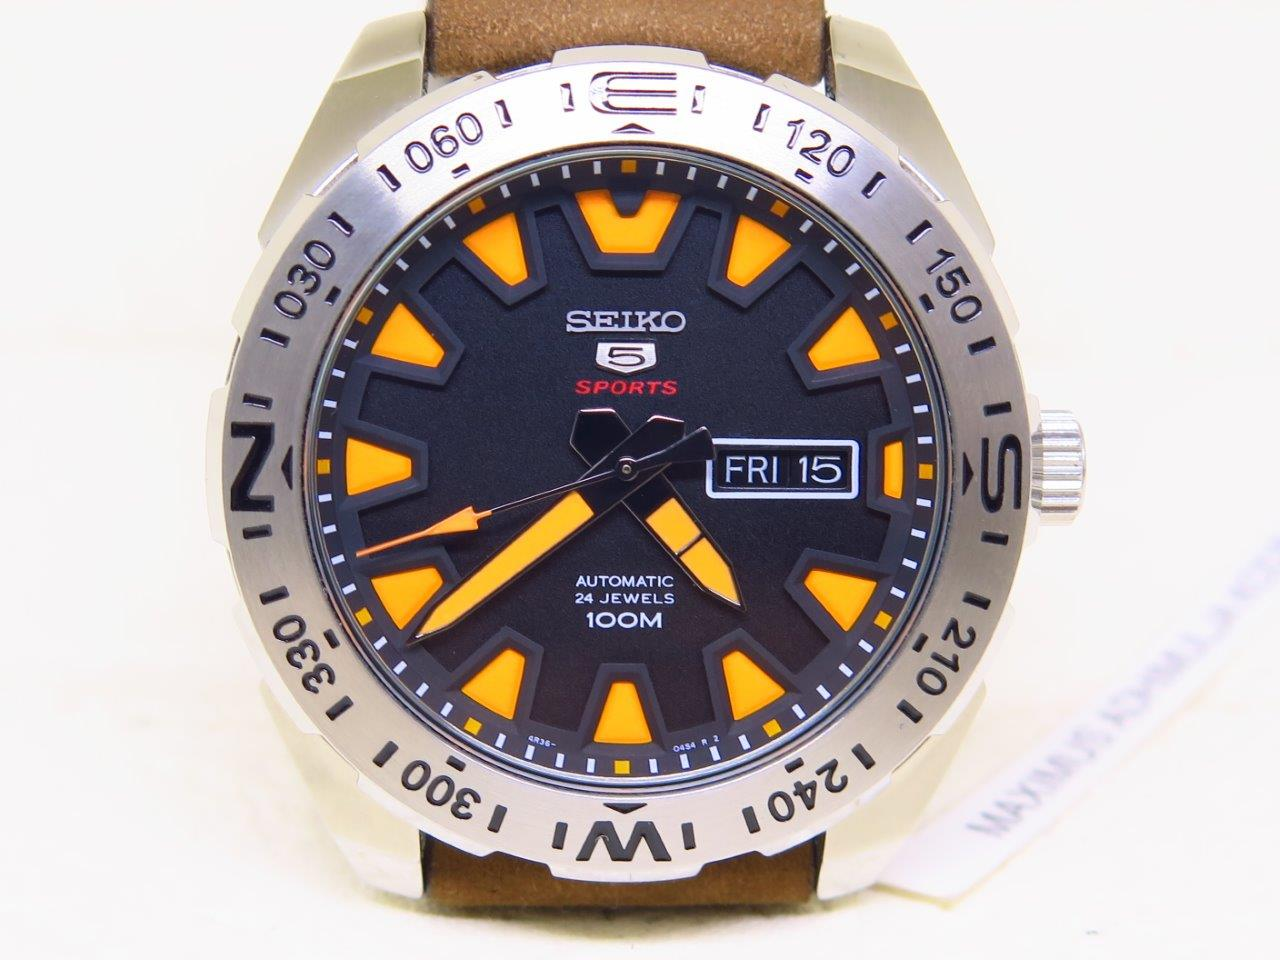 SEIKO 5 SPORTS BLACK DIAL ORANGE INDEXES - AUTOMATIC 4R36A